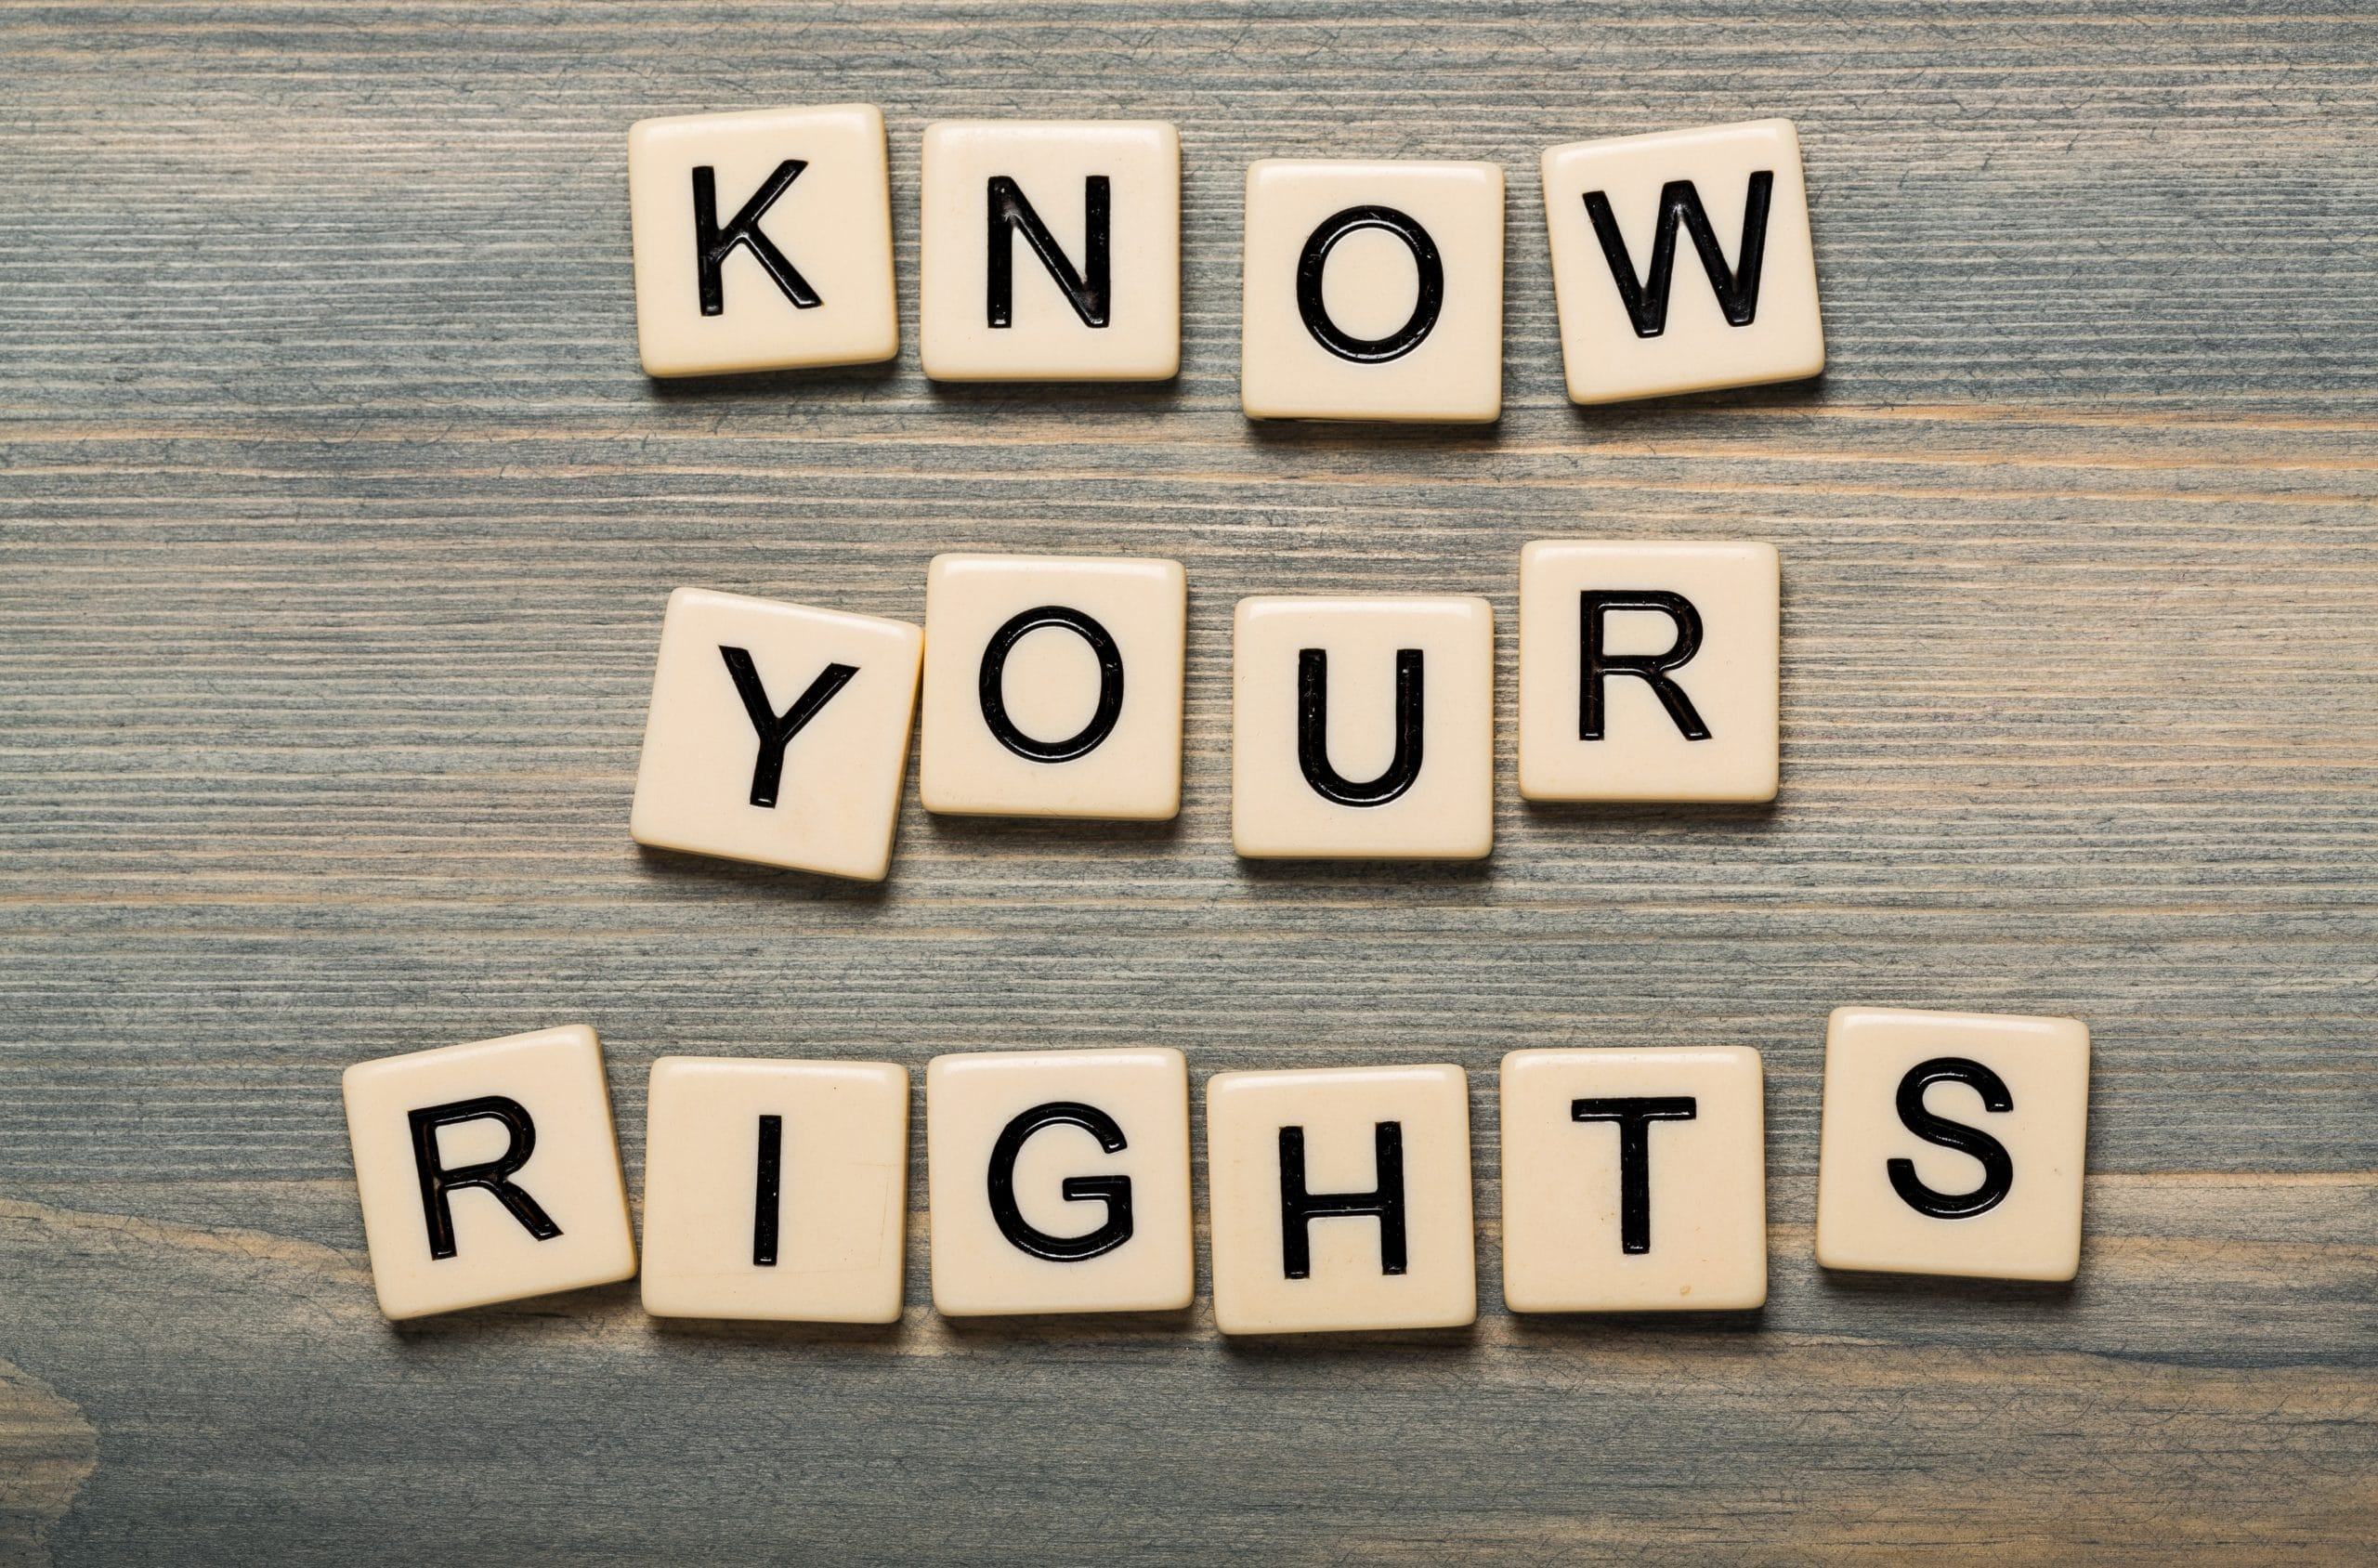 What Does Your Right to Remain Silent Mean? - Criminal Defense Lawyer Broden Mickelsen LLP